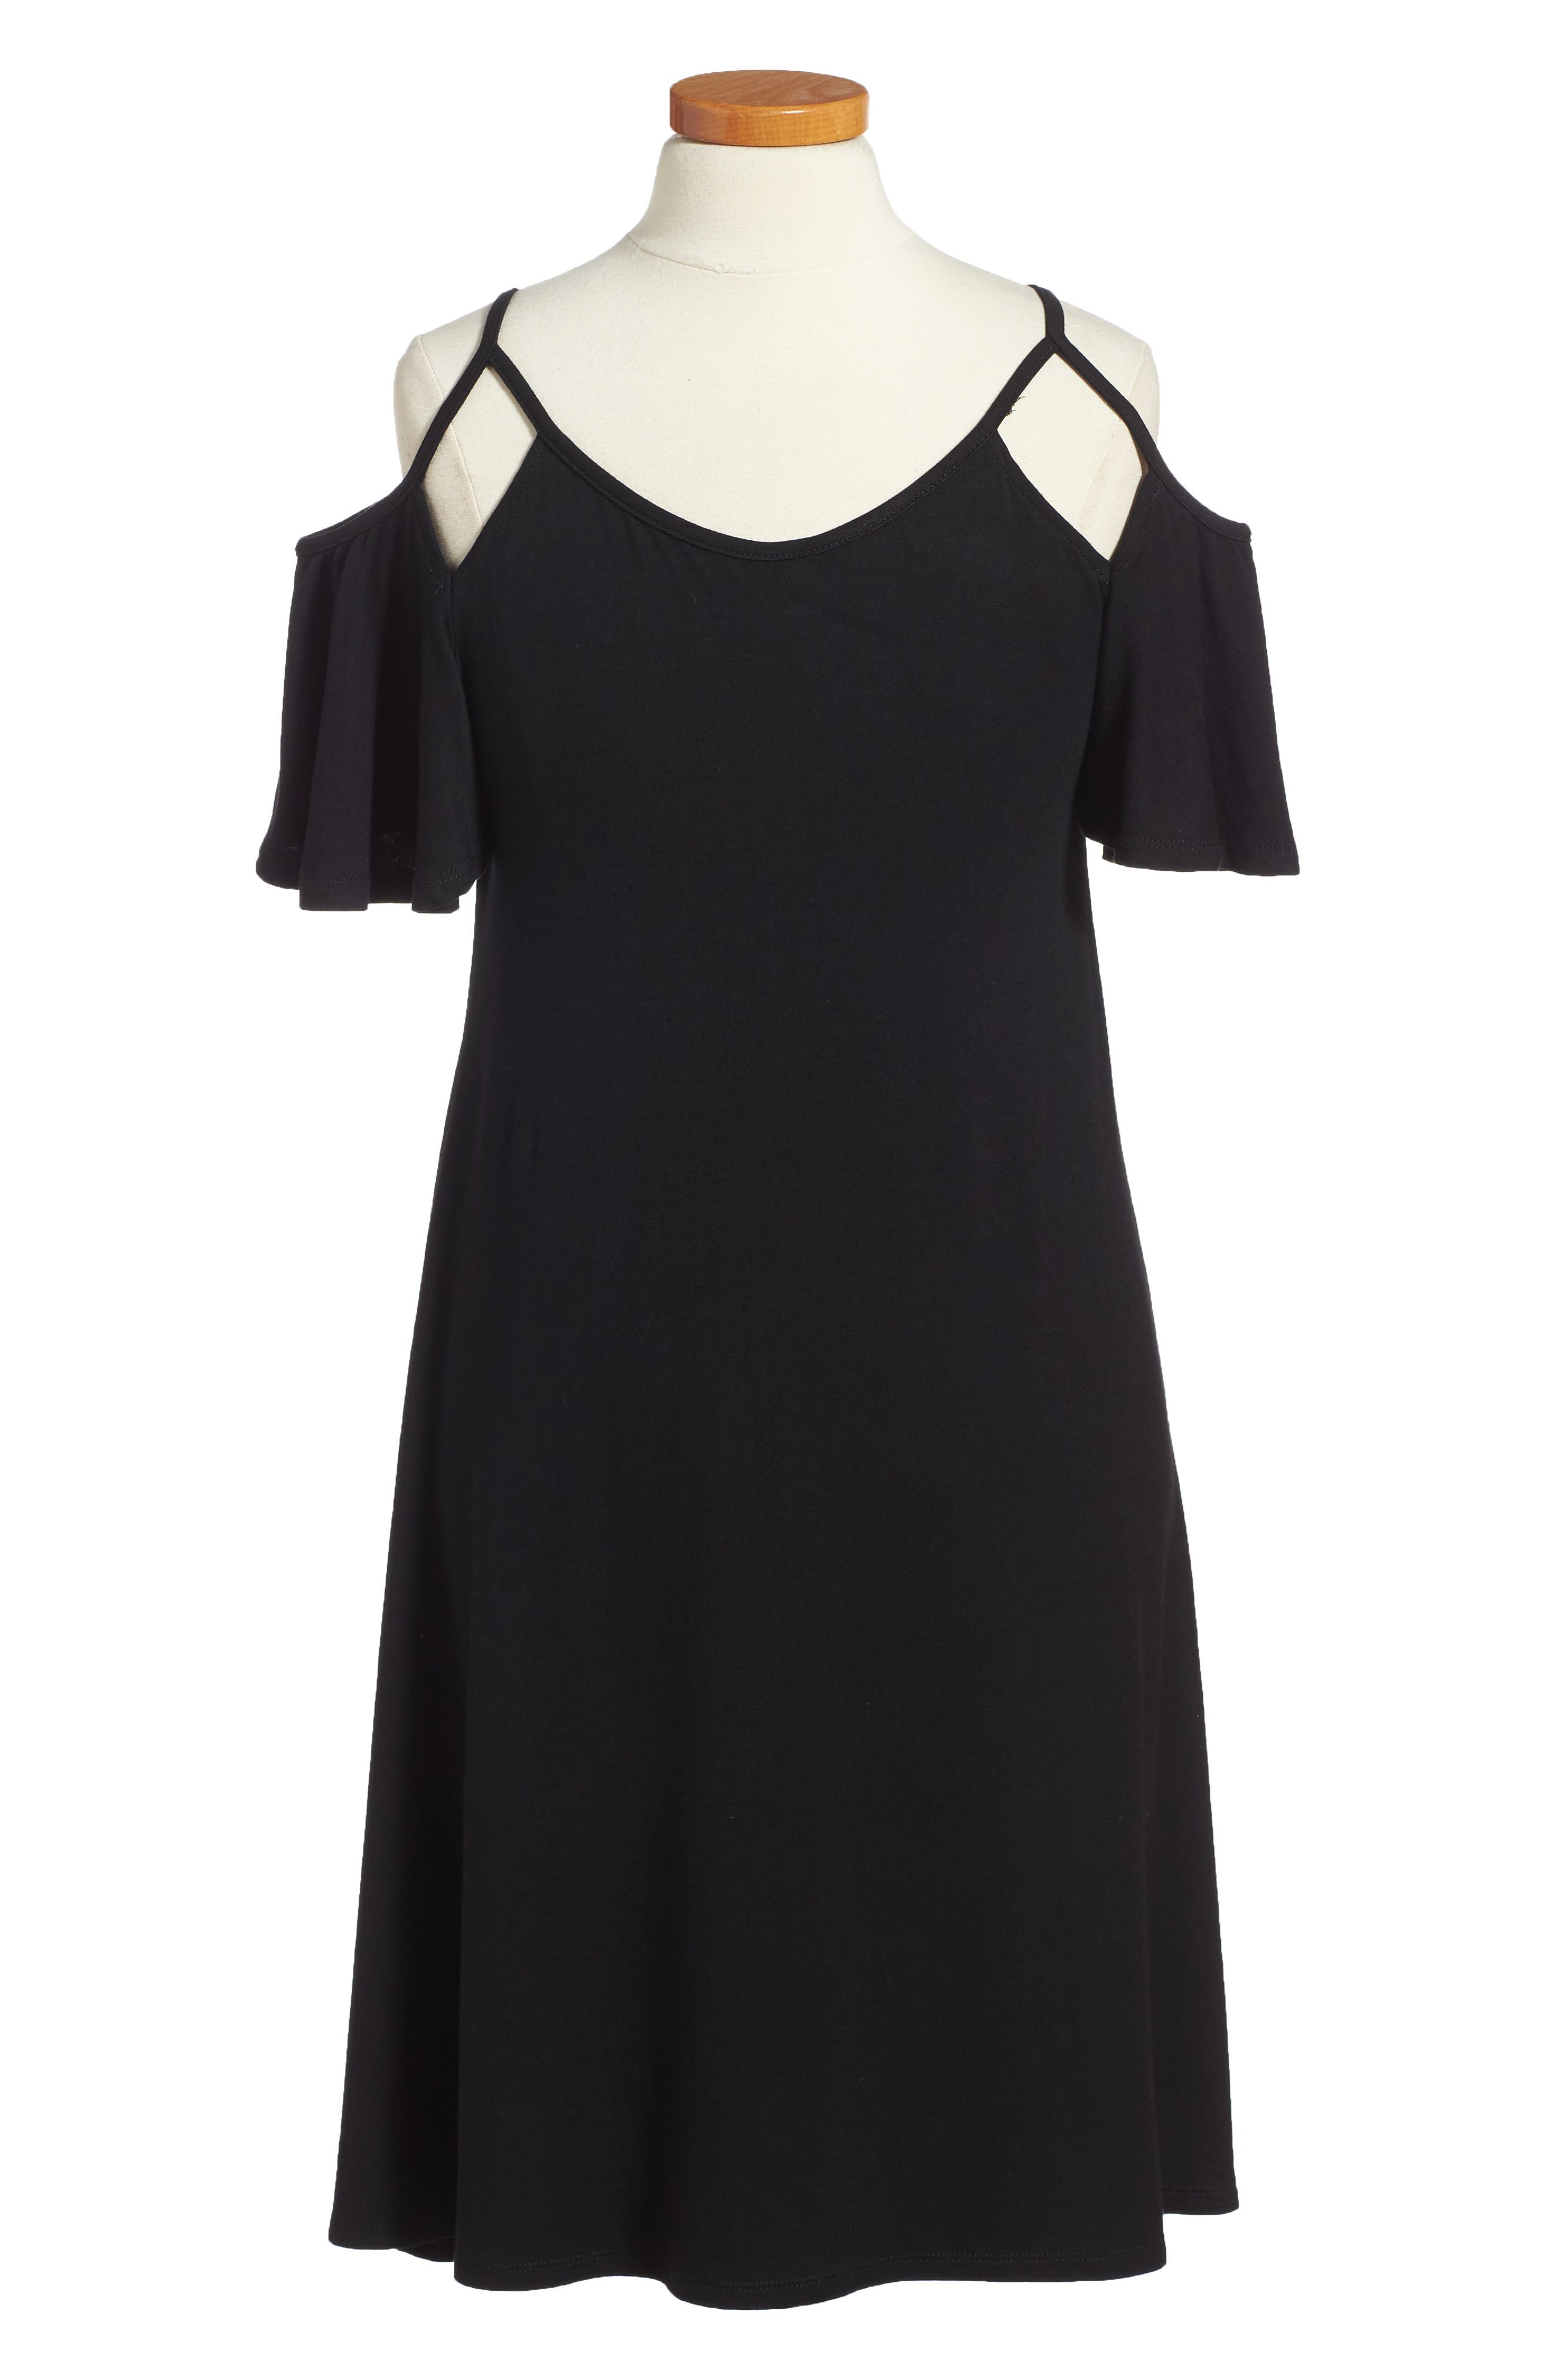 Regine Cold Shoulder Dress,                             Main thumbnail 1, color,                             001